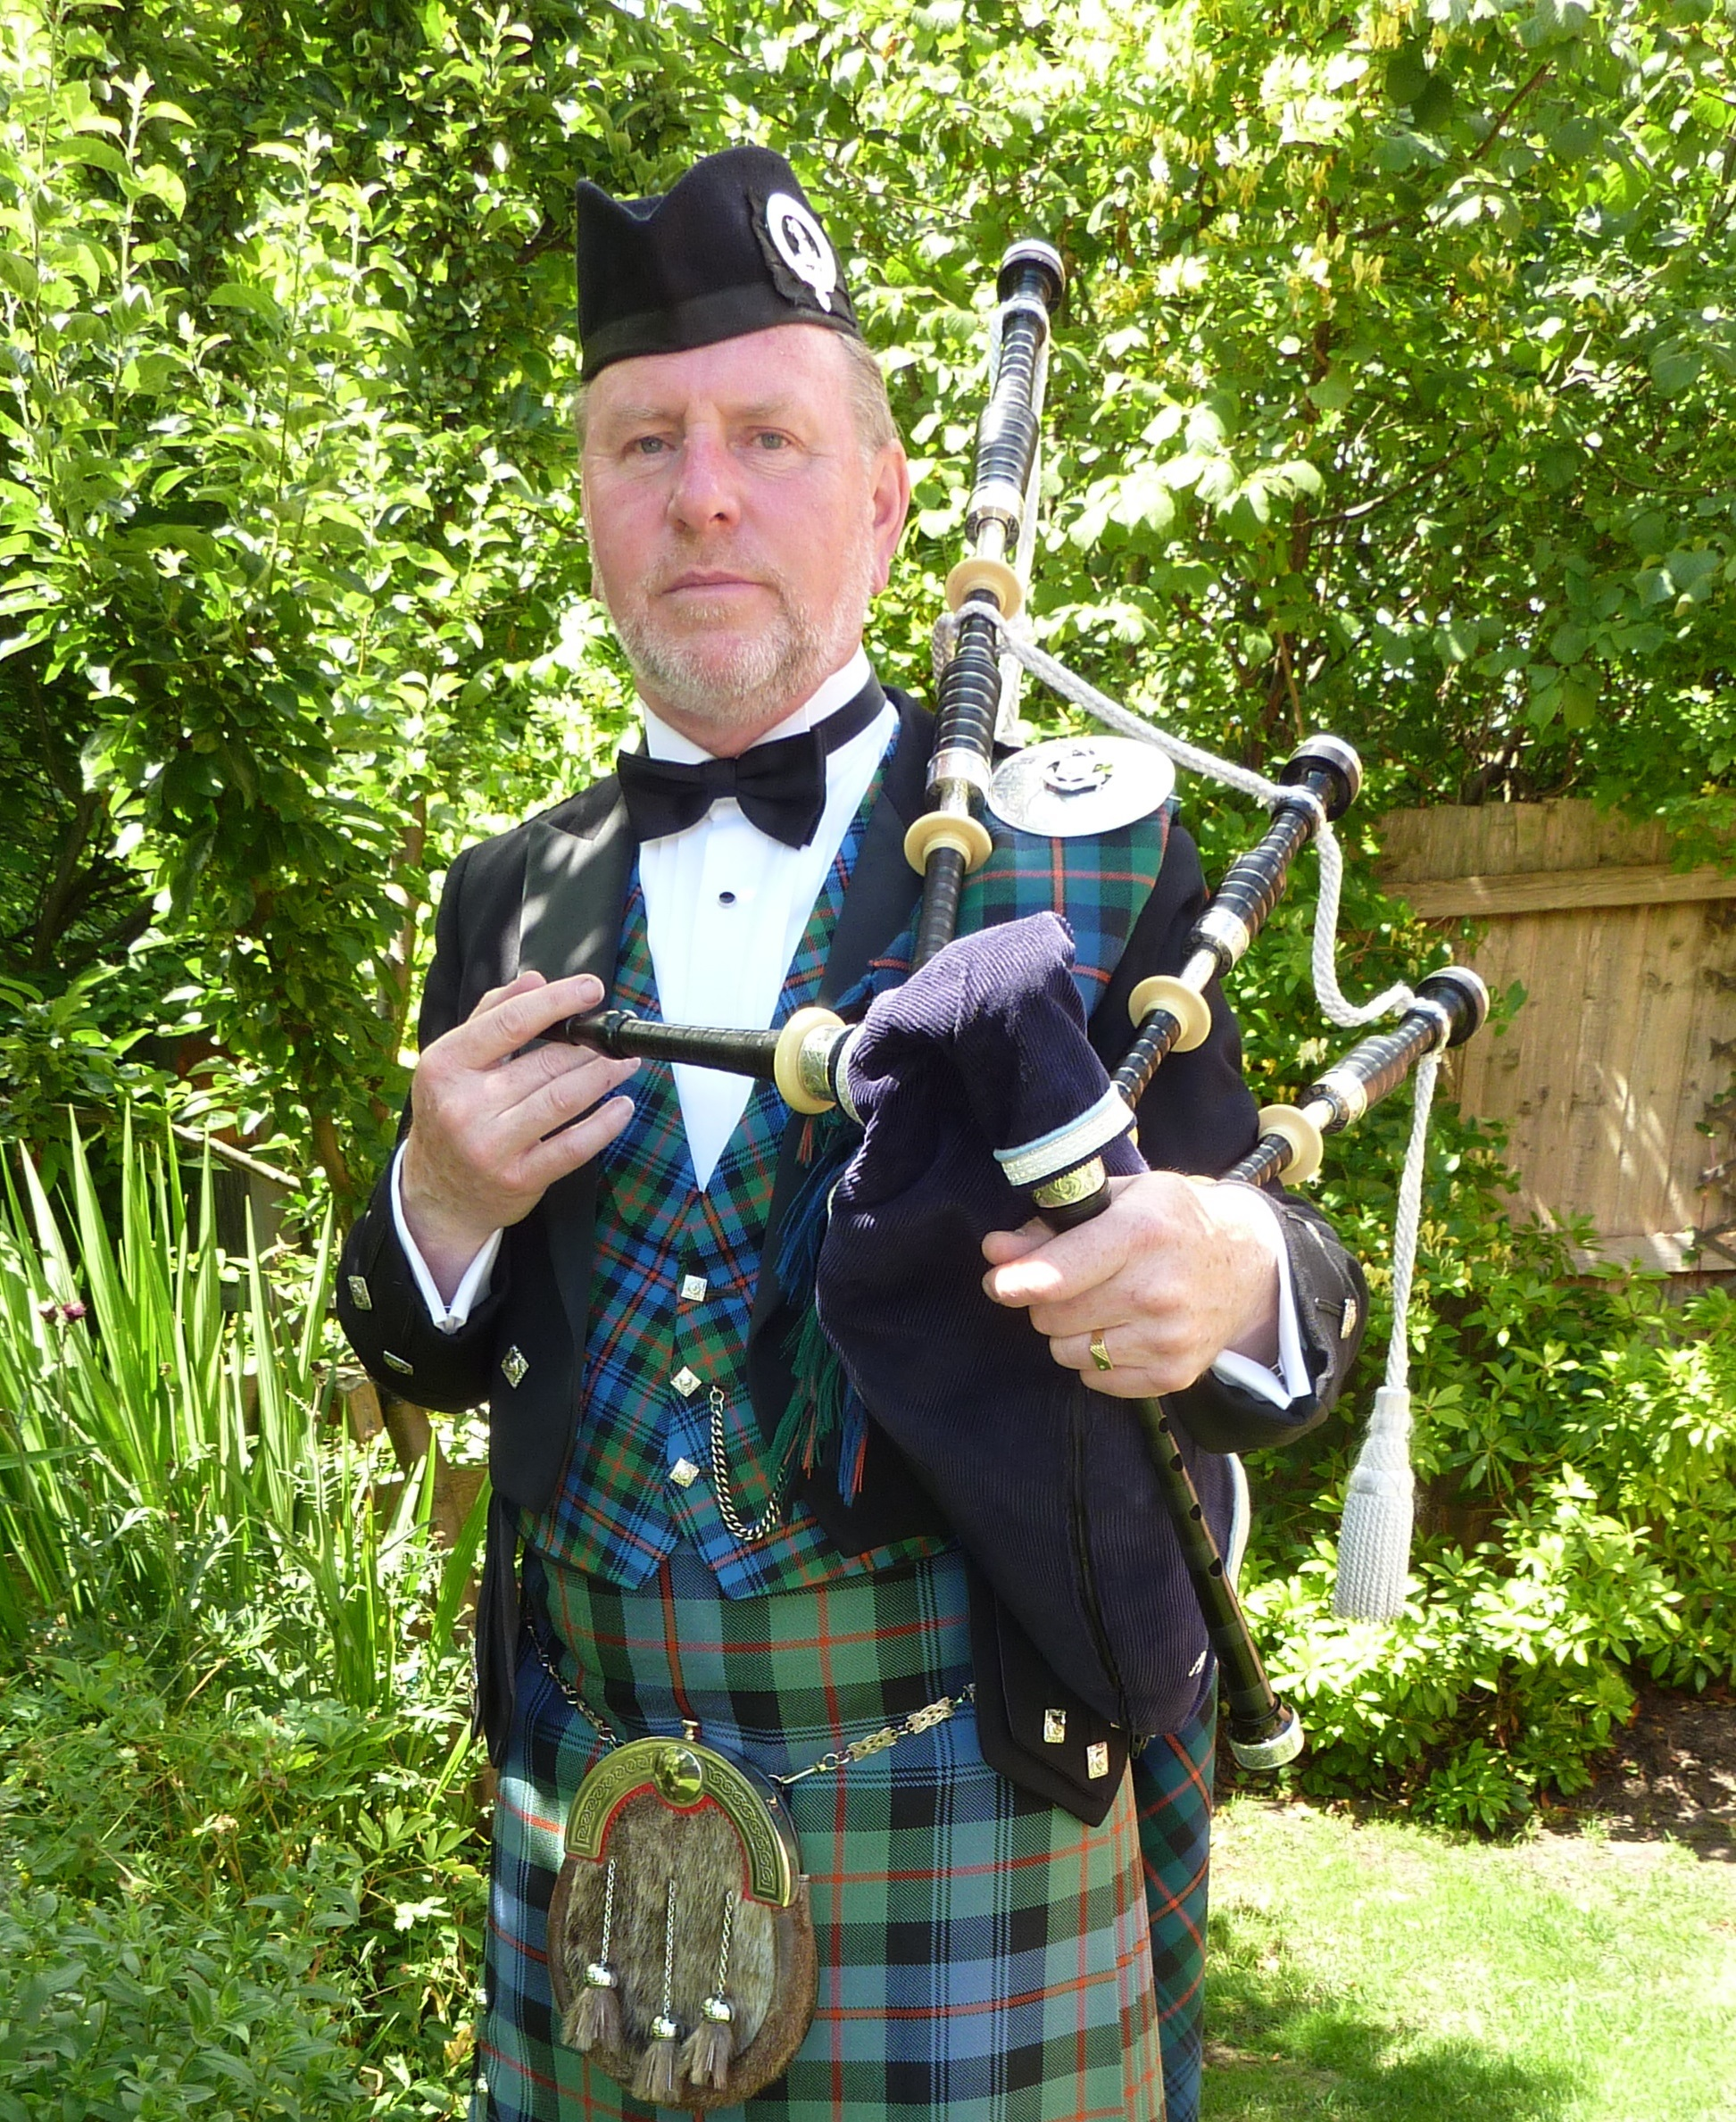 Bagpiper Pipe Major Alan J. Harrison